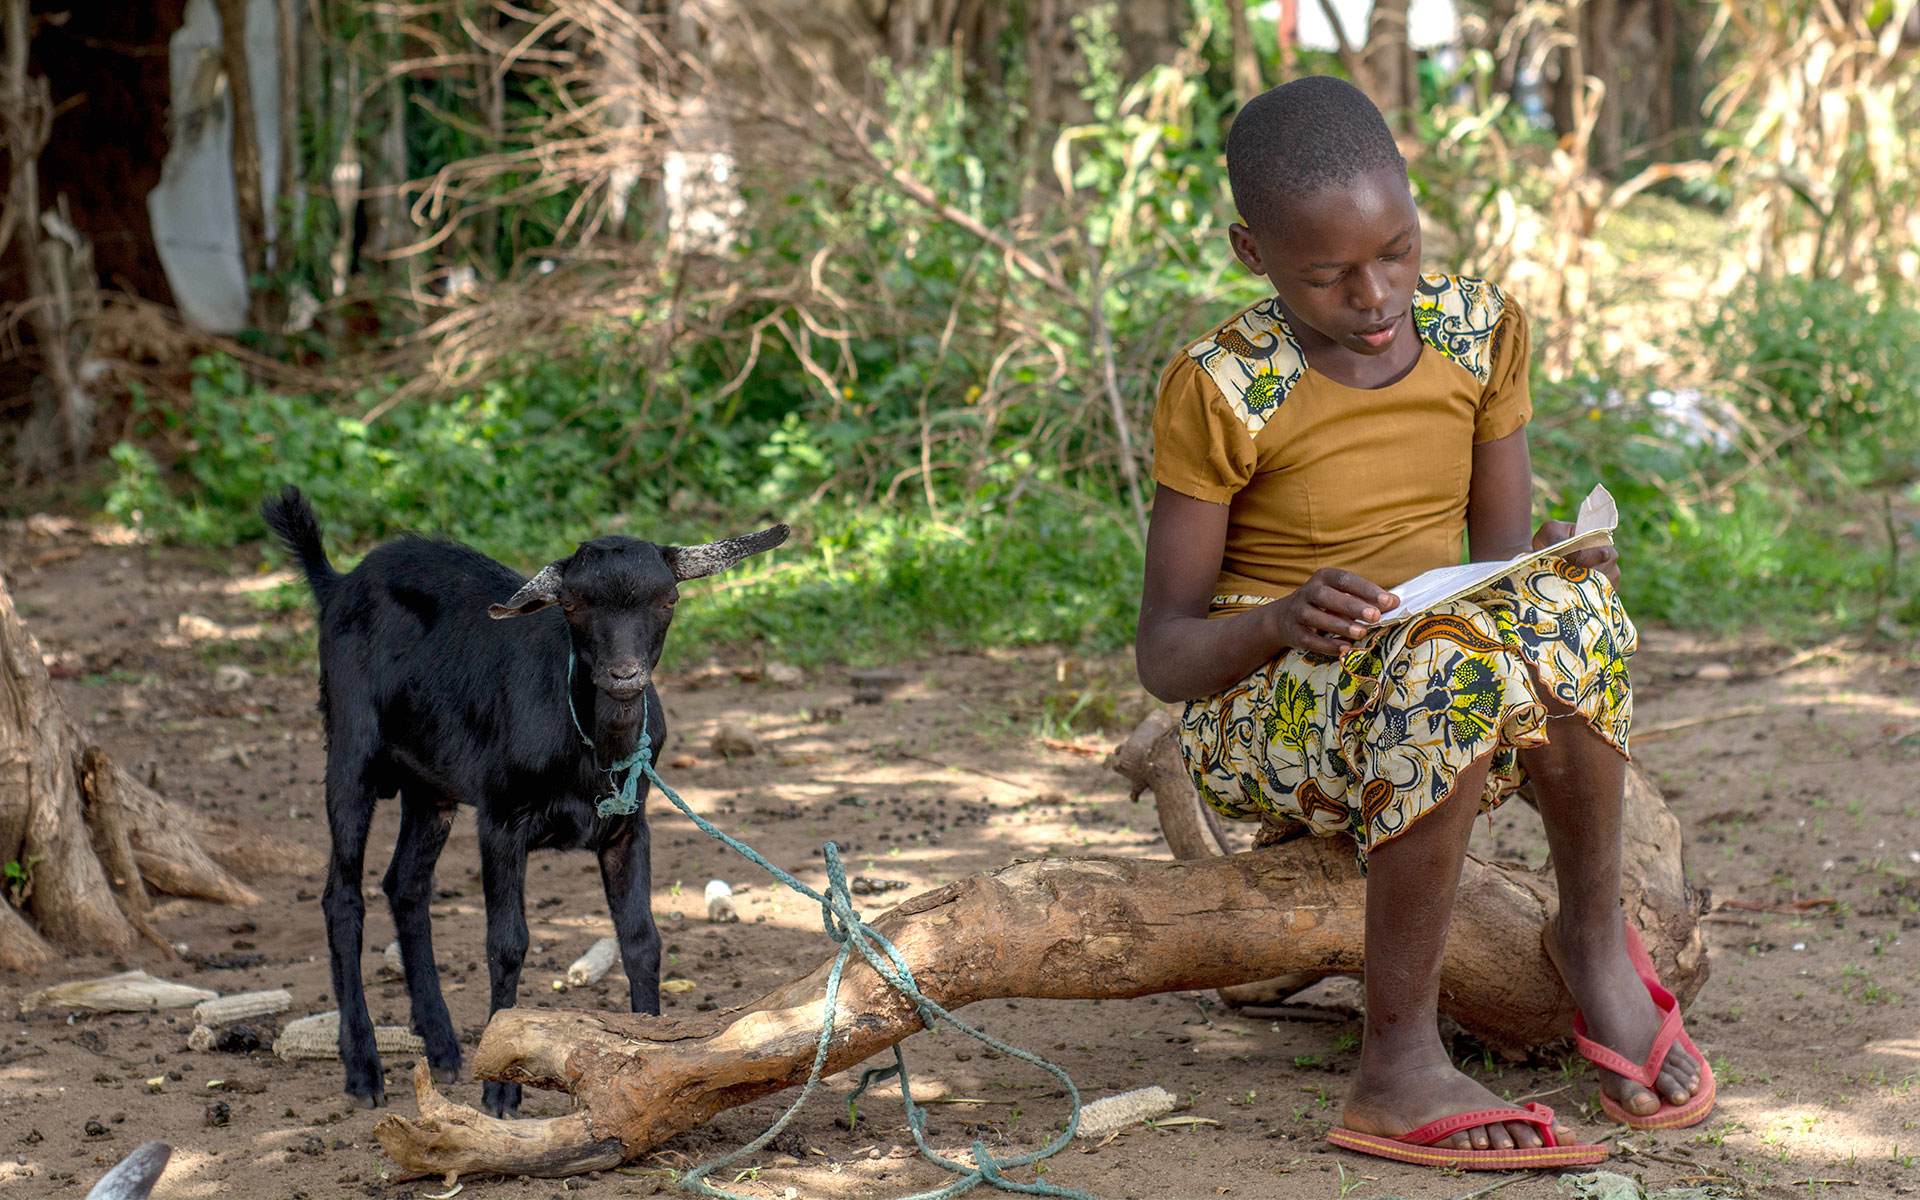 Salama reading sponsor letters while sitting next to a goat